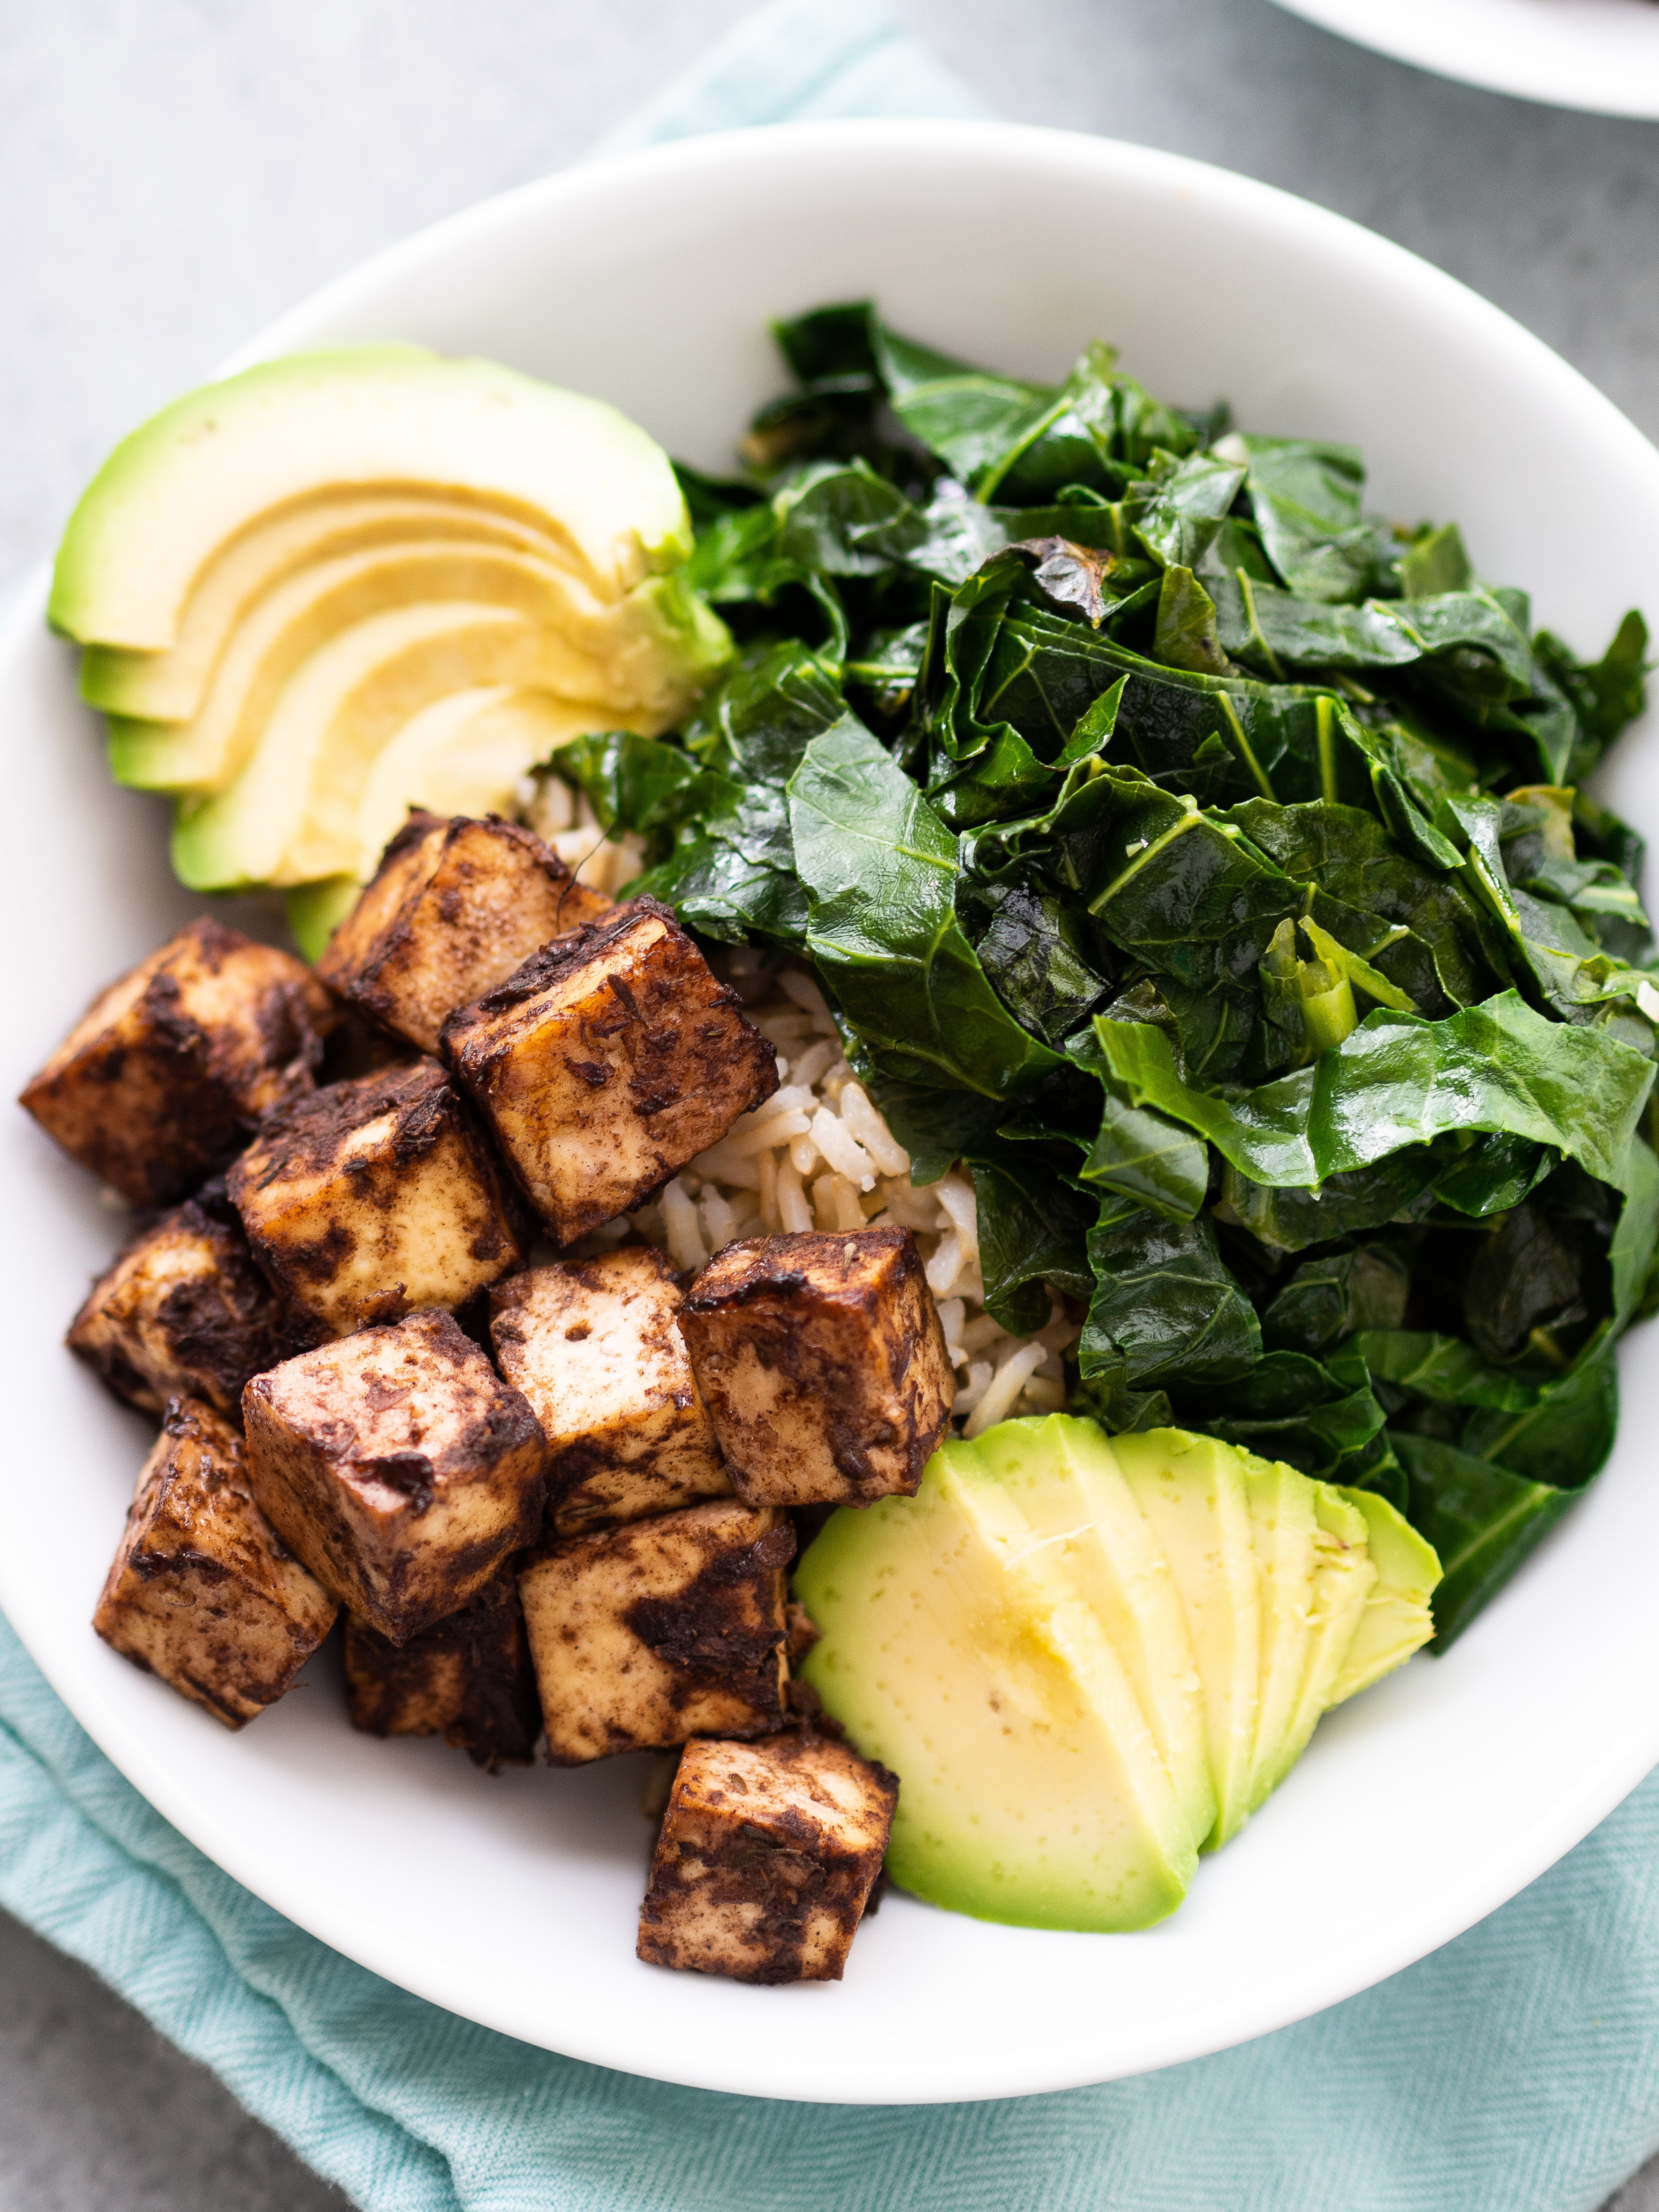 the jerk tofu bowl is full of flavor and bold jerk spices #vegetarian #tofu #grainbowl #healthydinner #healthyfood #bowlrecipe